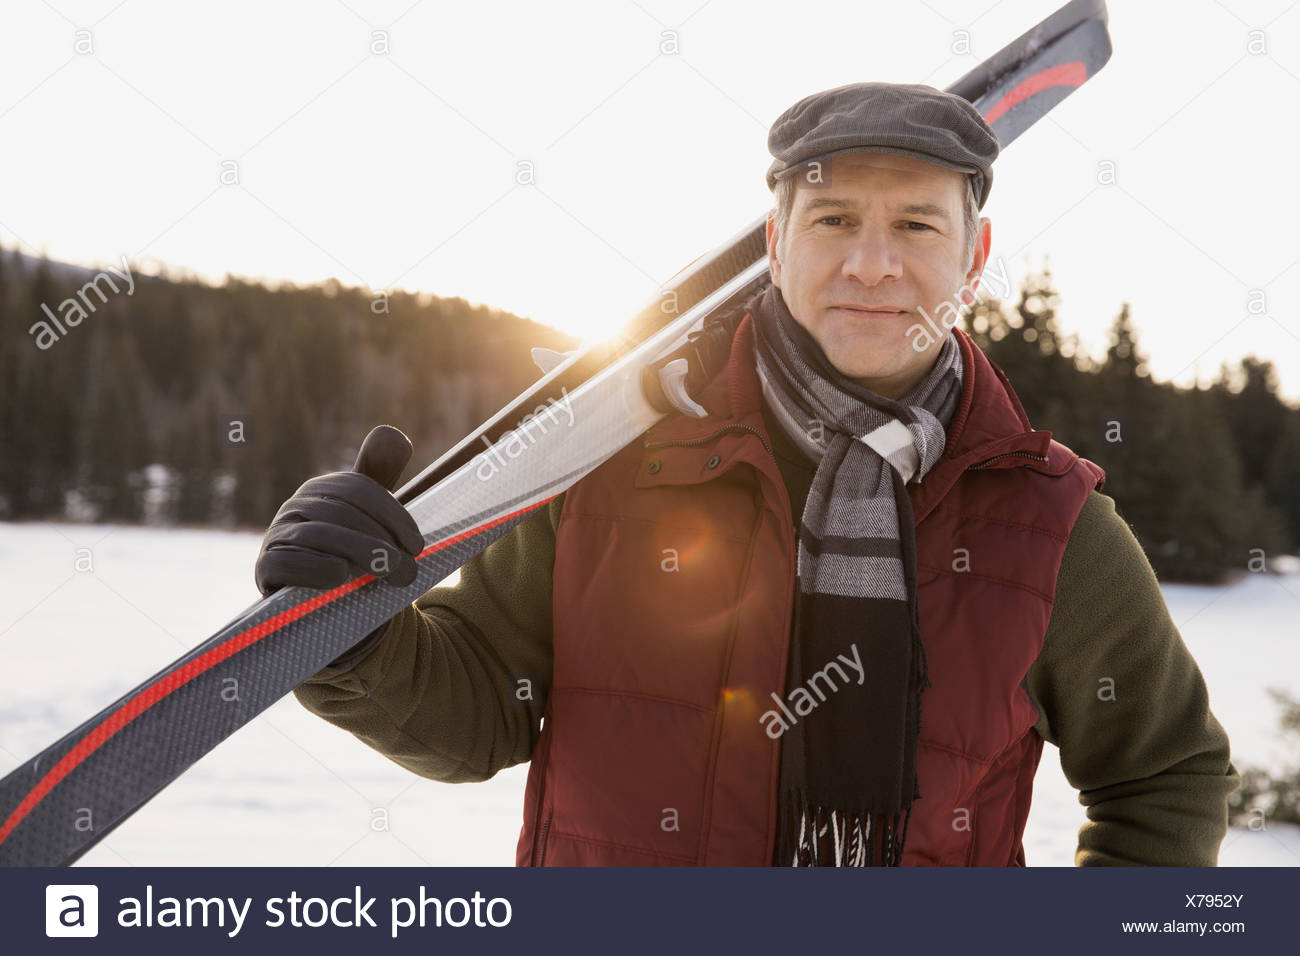 Portrait of man carrying cross-country skis - Stock Image